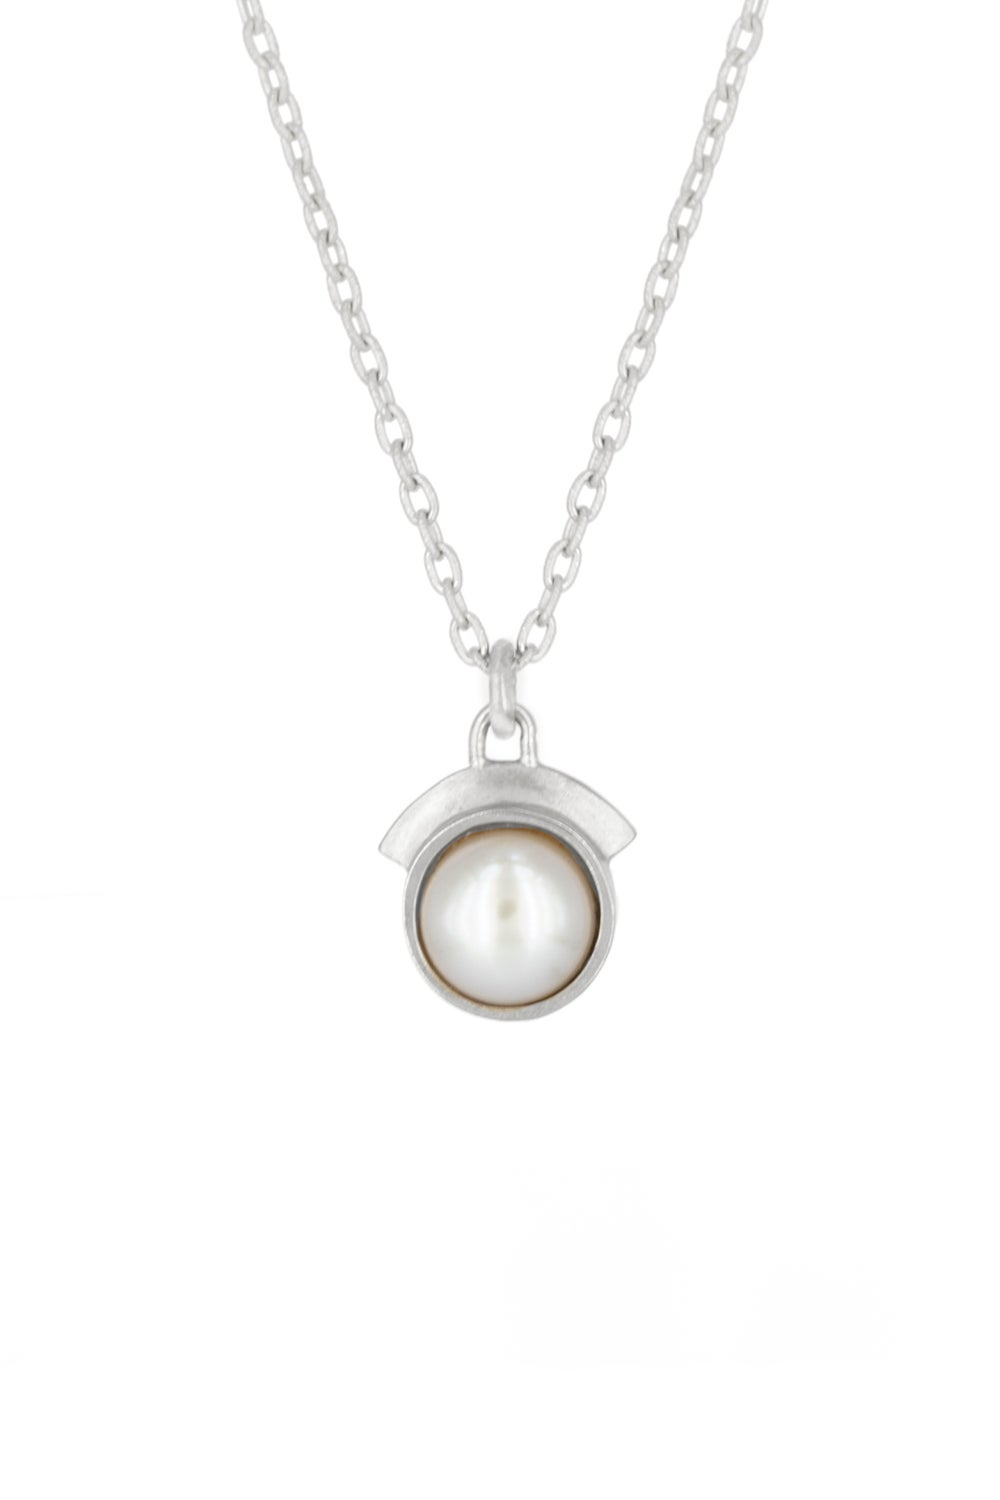 PEARL DREAM SEQUINS NECKLACE- SILVER